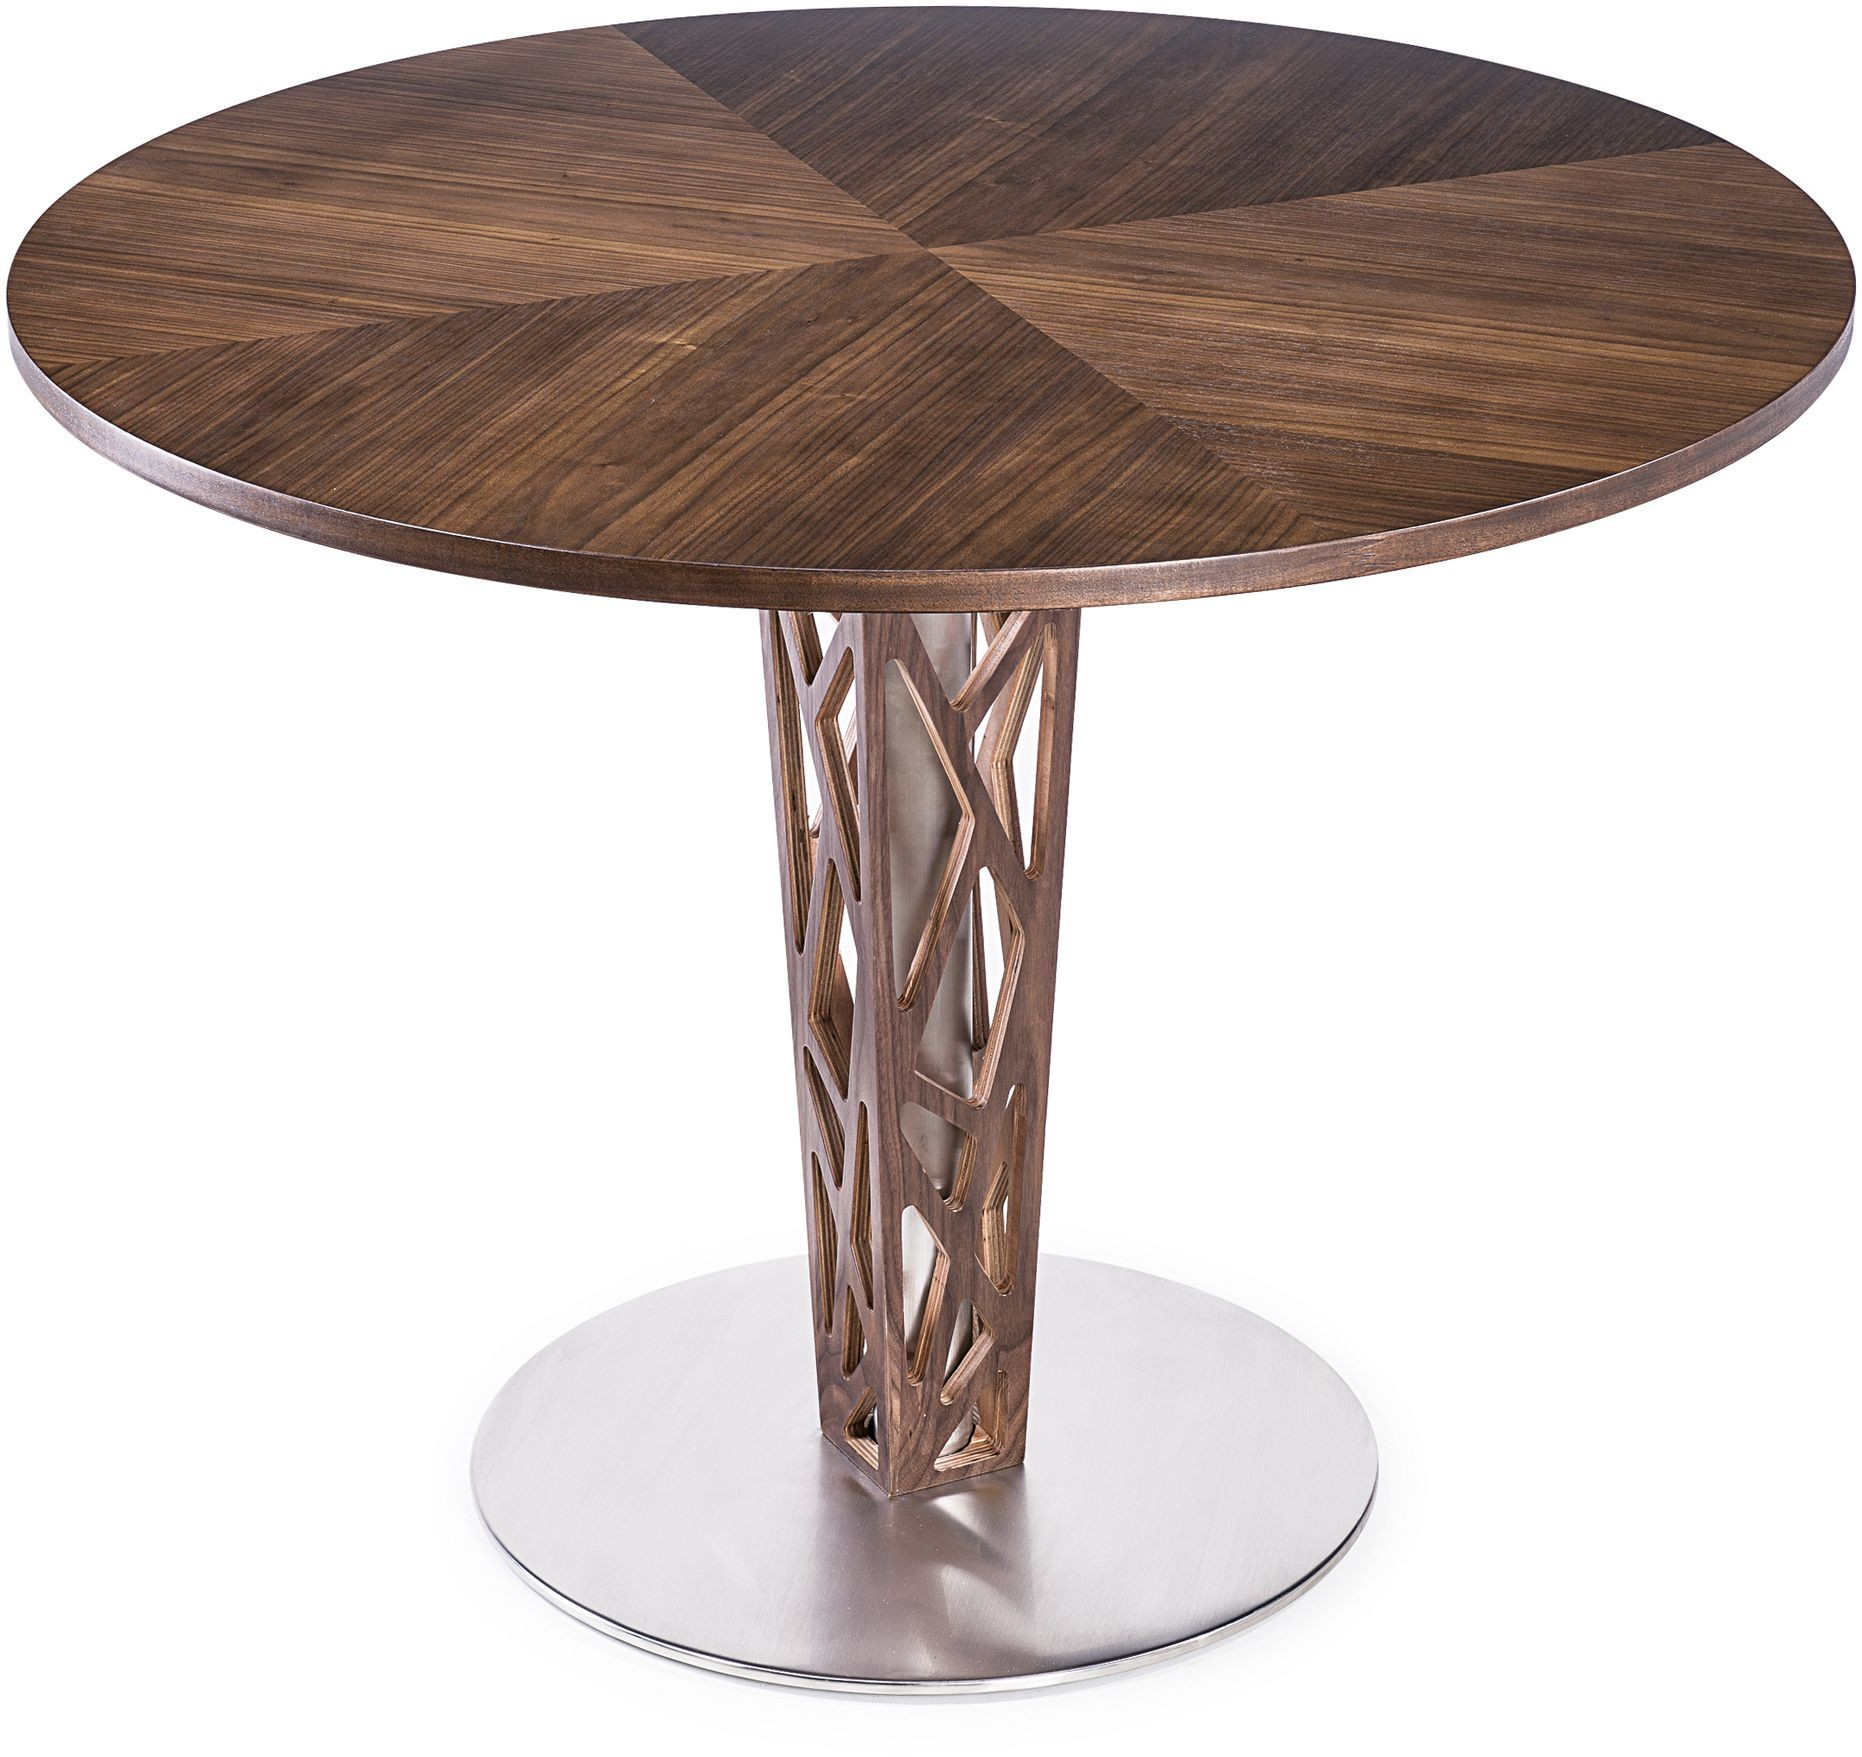 crystal 48 walnut veneer wood top round dining table from armen living coleman furniture. Black Bedroom Furniture Sets. Home Design Ideas